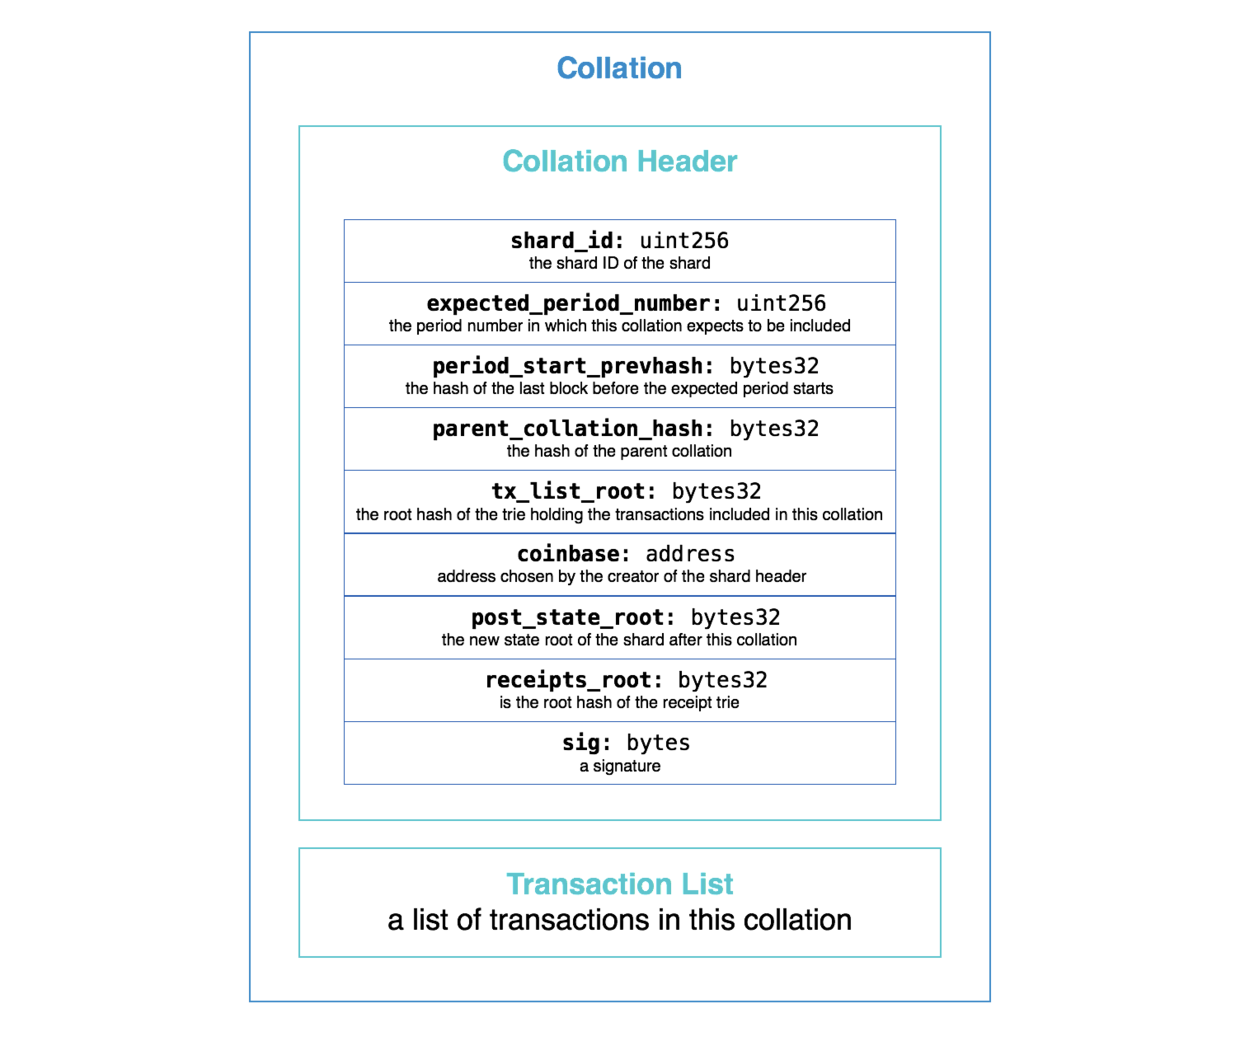 Figure 1. A glimpse of basic collation data structure.